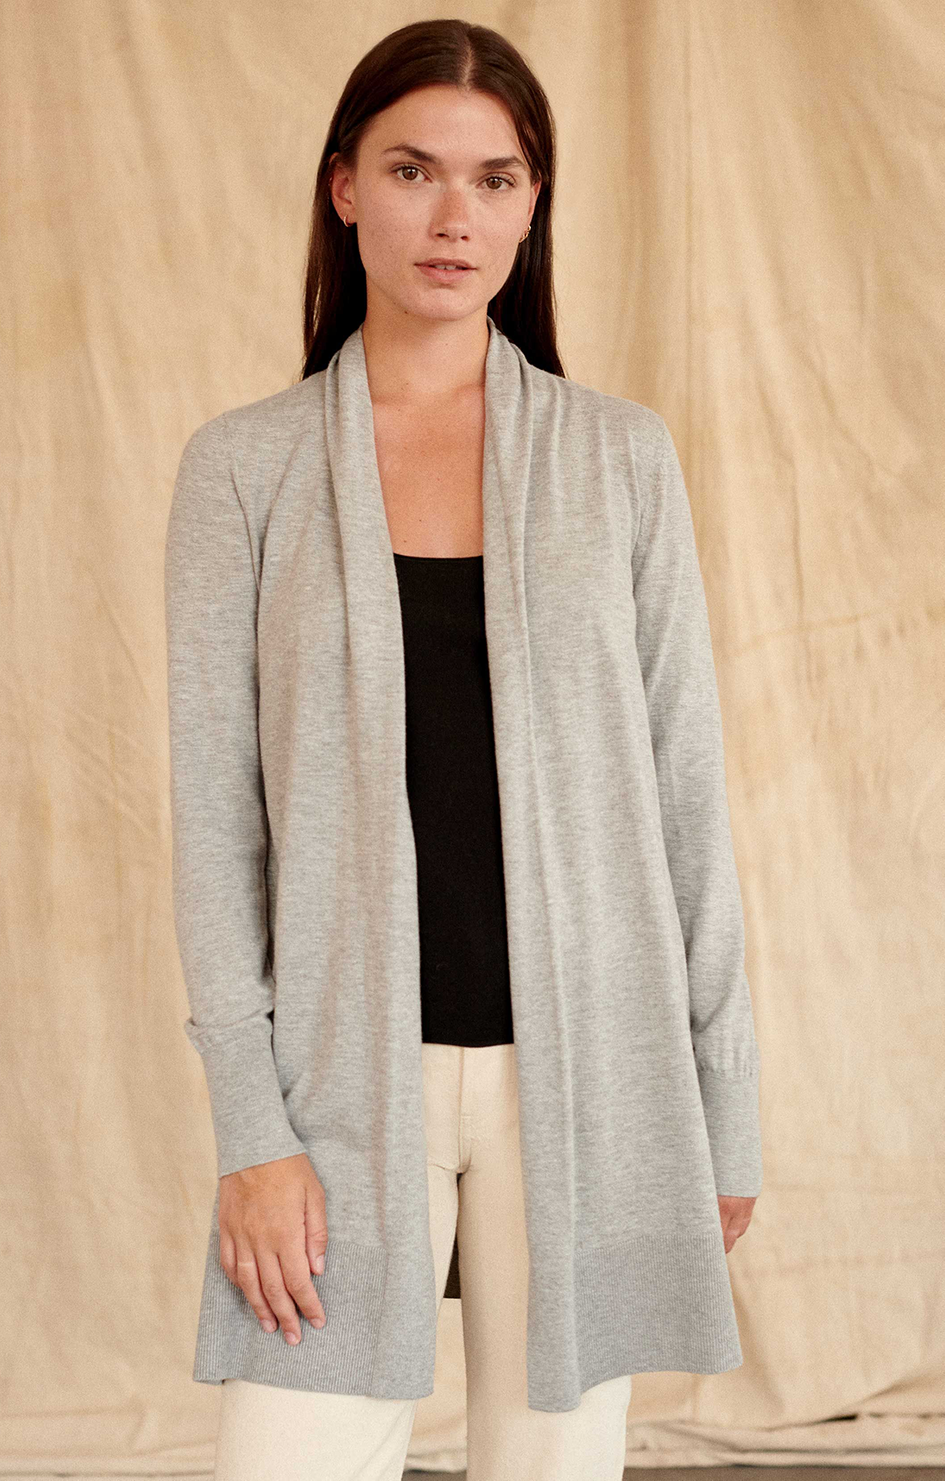 White & Warren Cardigan Cool Grey